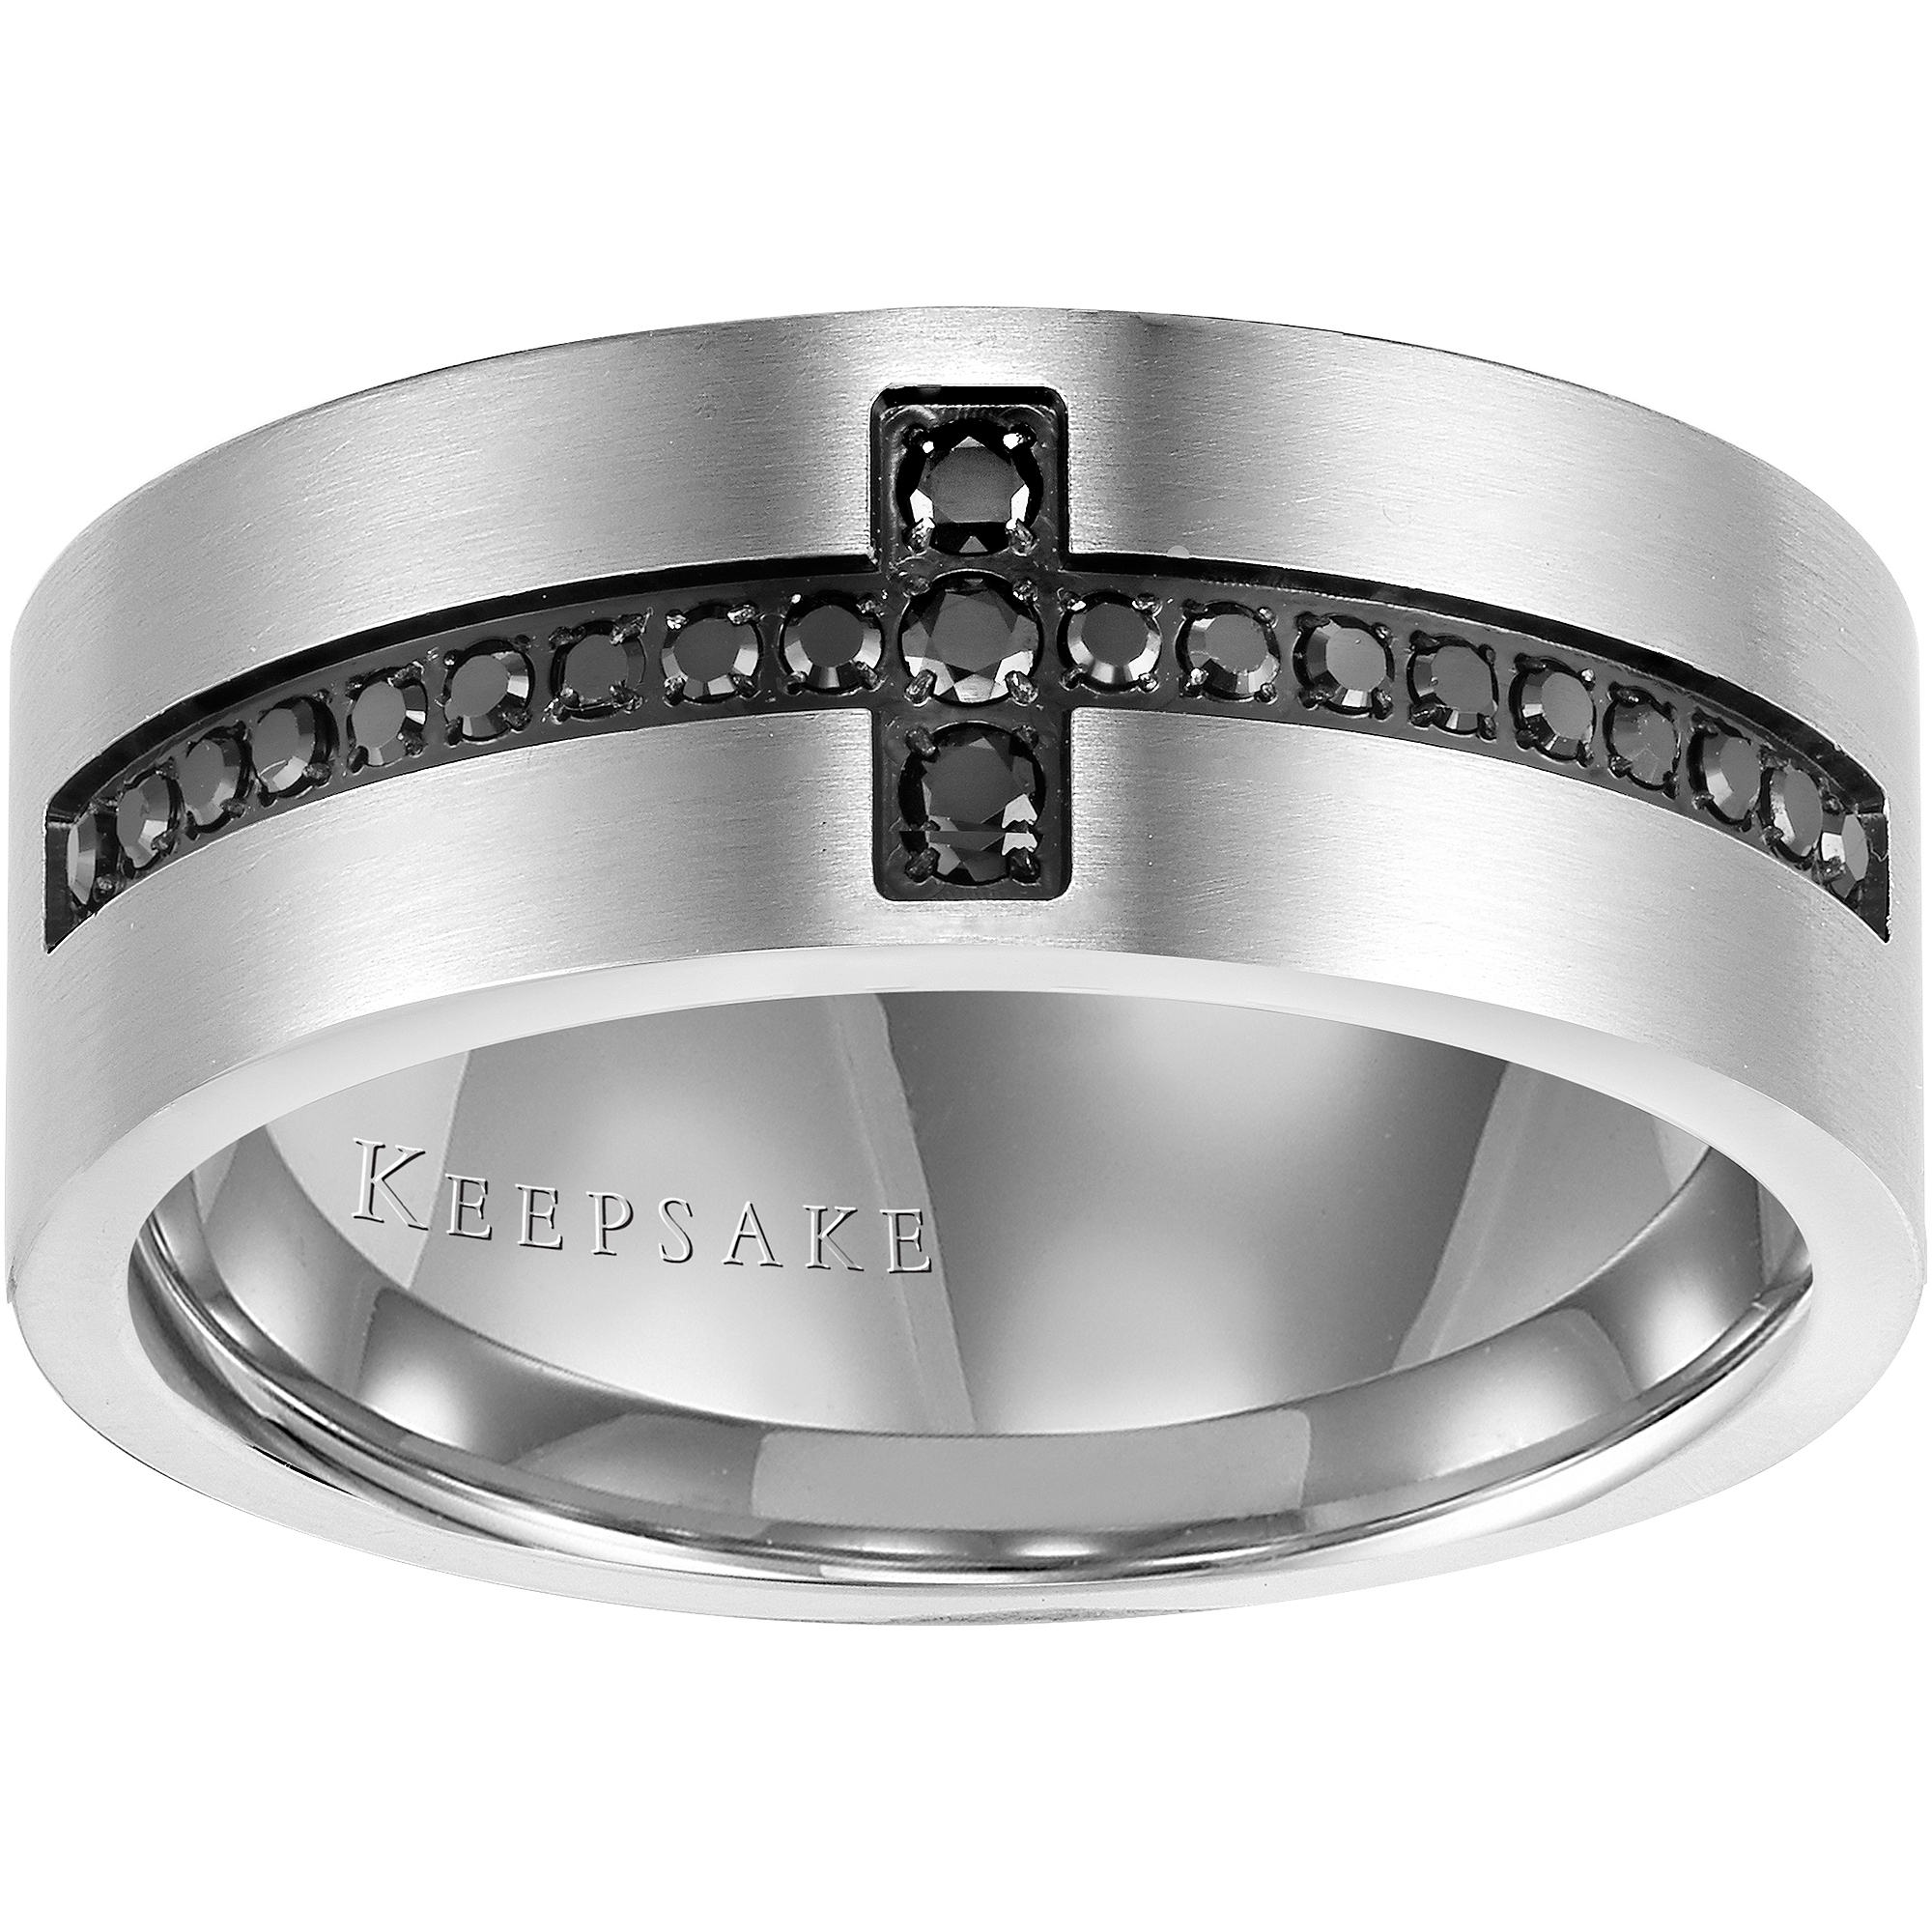 Keepsake Men's Rebel 1/4 Carat T.W. Black Diamond Stainless Steel Band